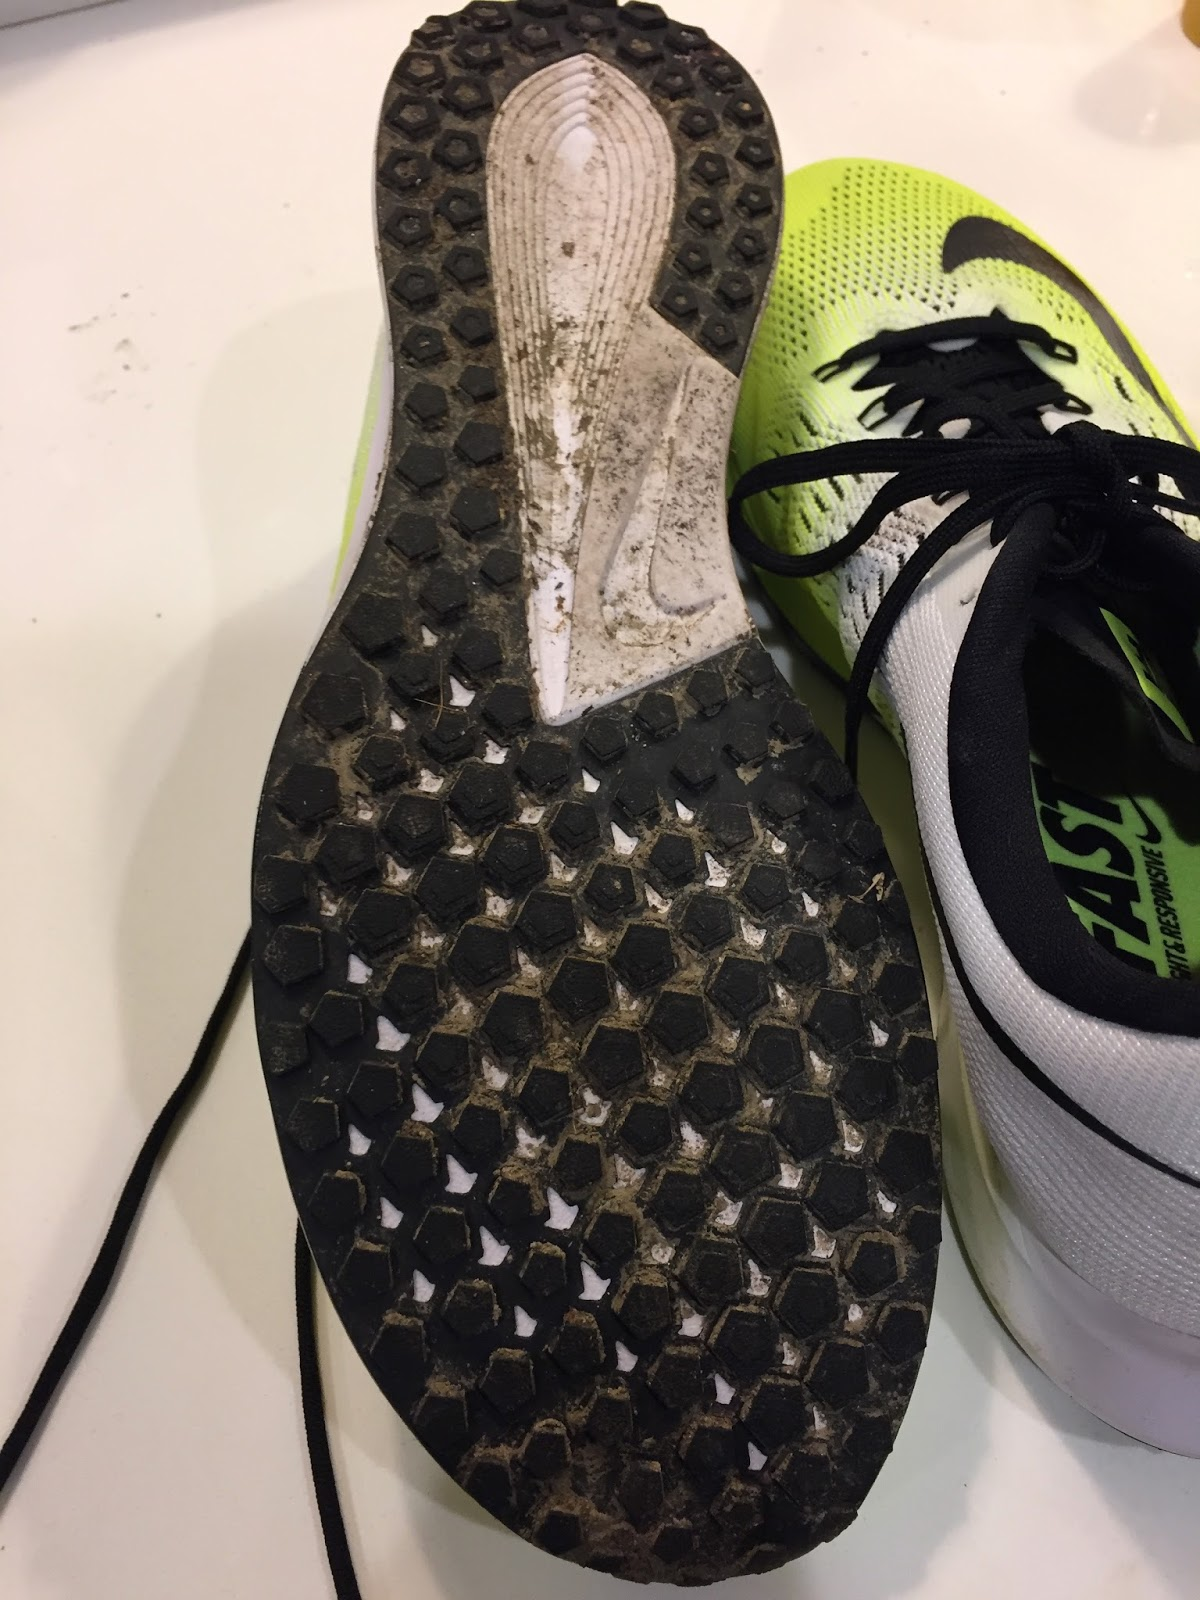 709f5e114bc The outsole is made of a thin layer of Duralon (blown rubber) which runs  the whole length of the shoe. There s a cutout in the middle of the heel  and the ...